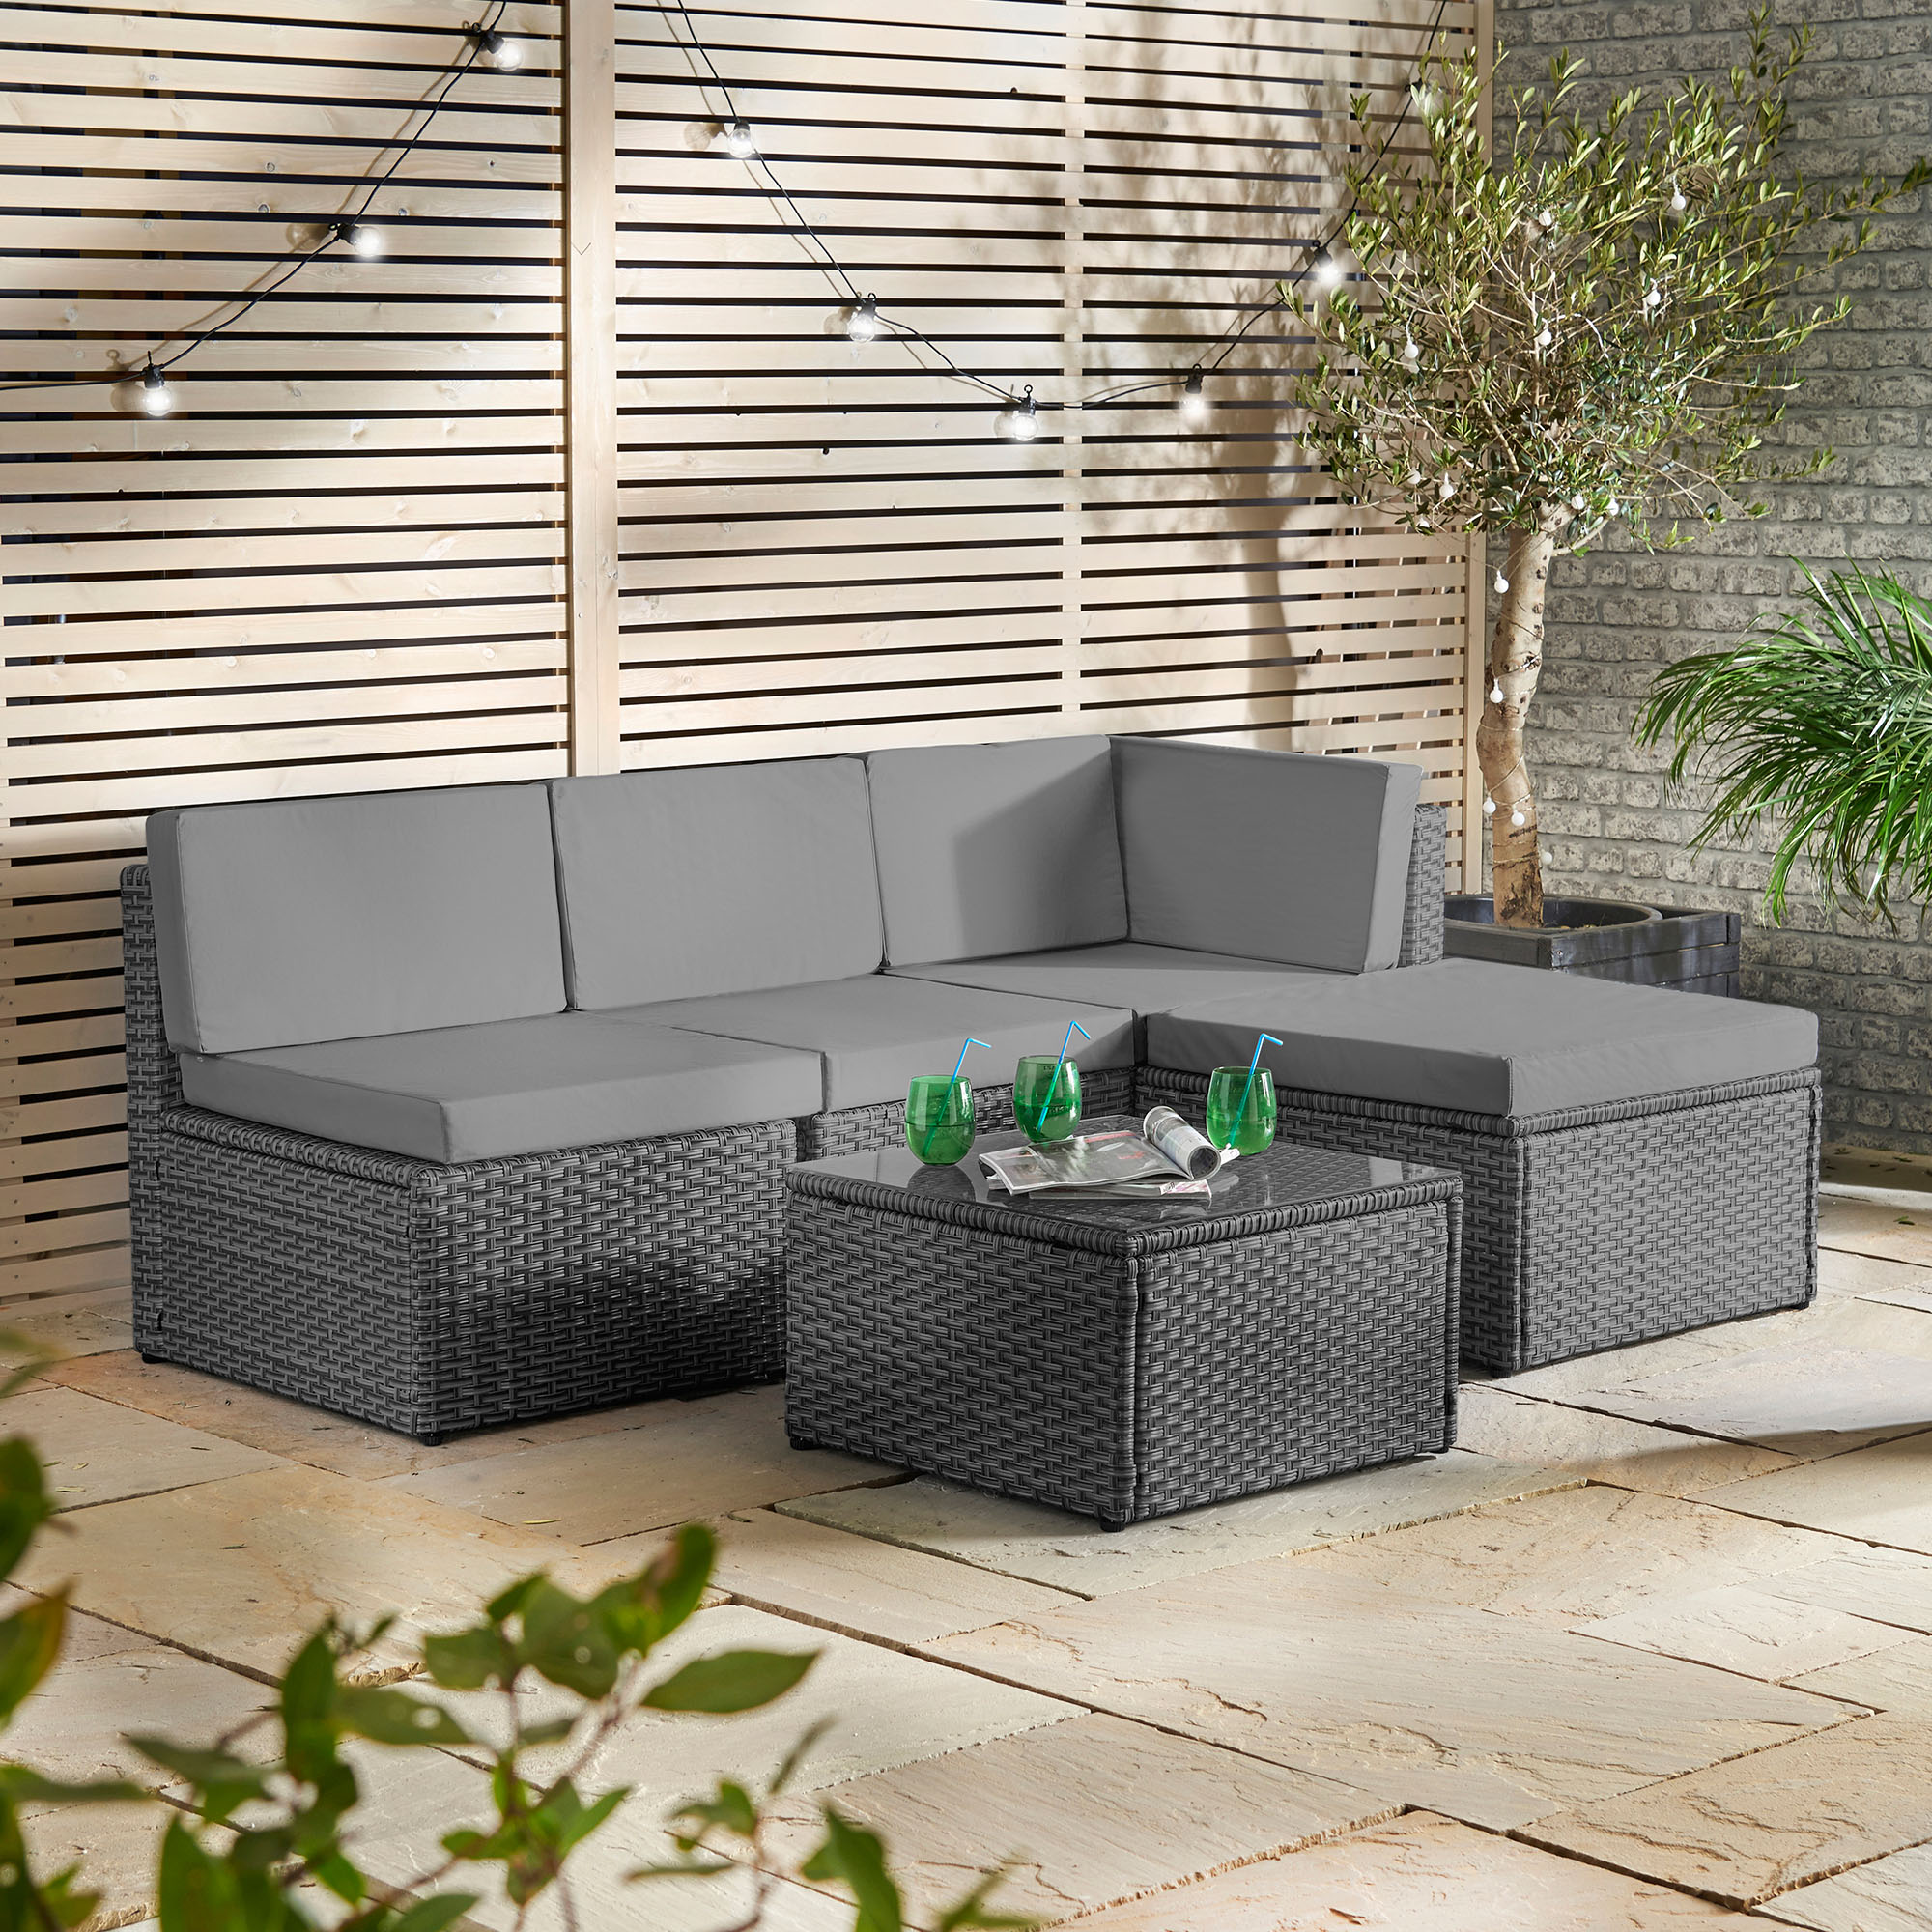 sentinel vonhaus rattan modular sofa set cushioned l shaped lounge dining set for garden